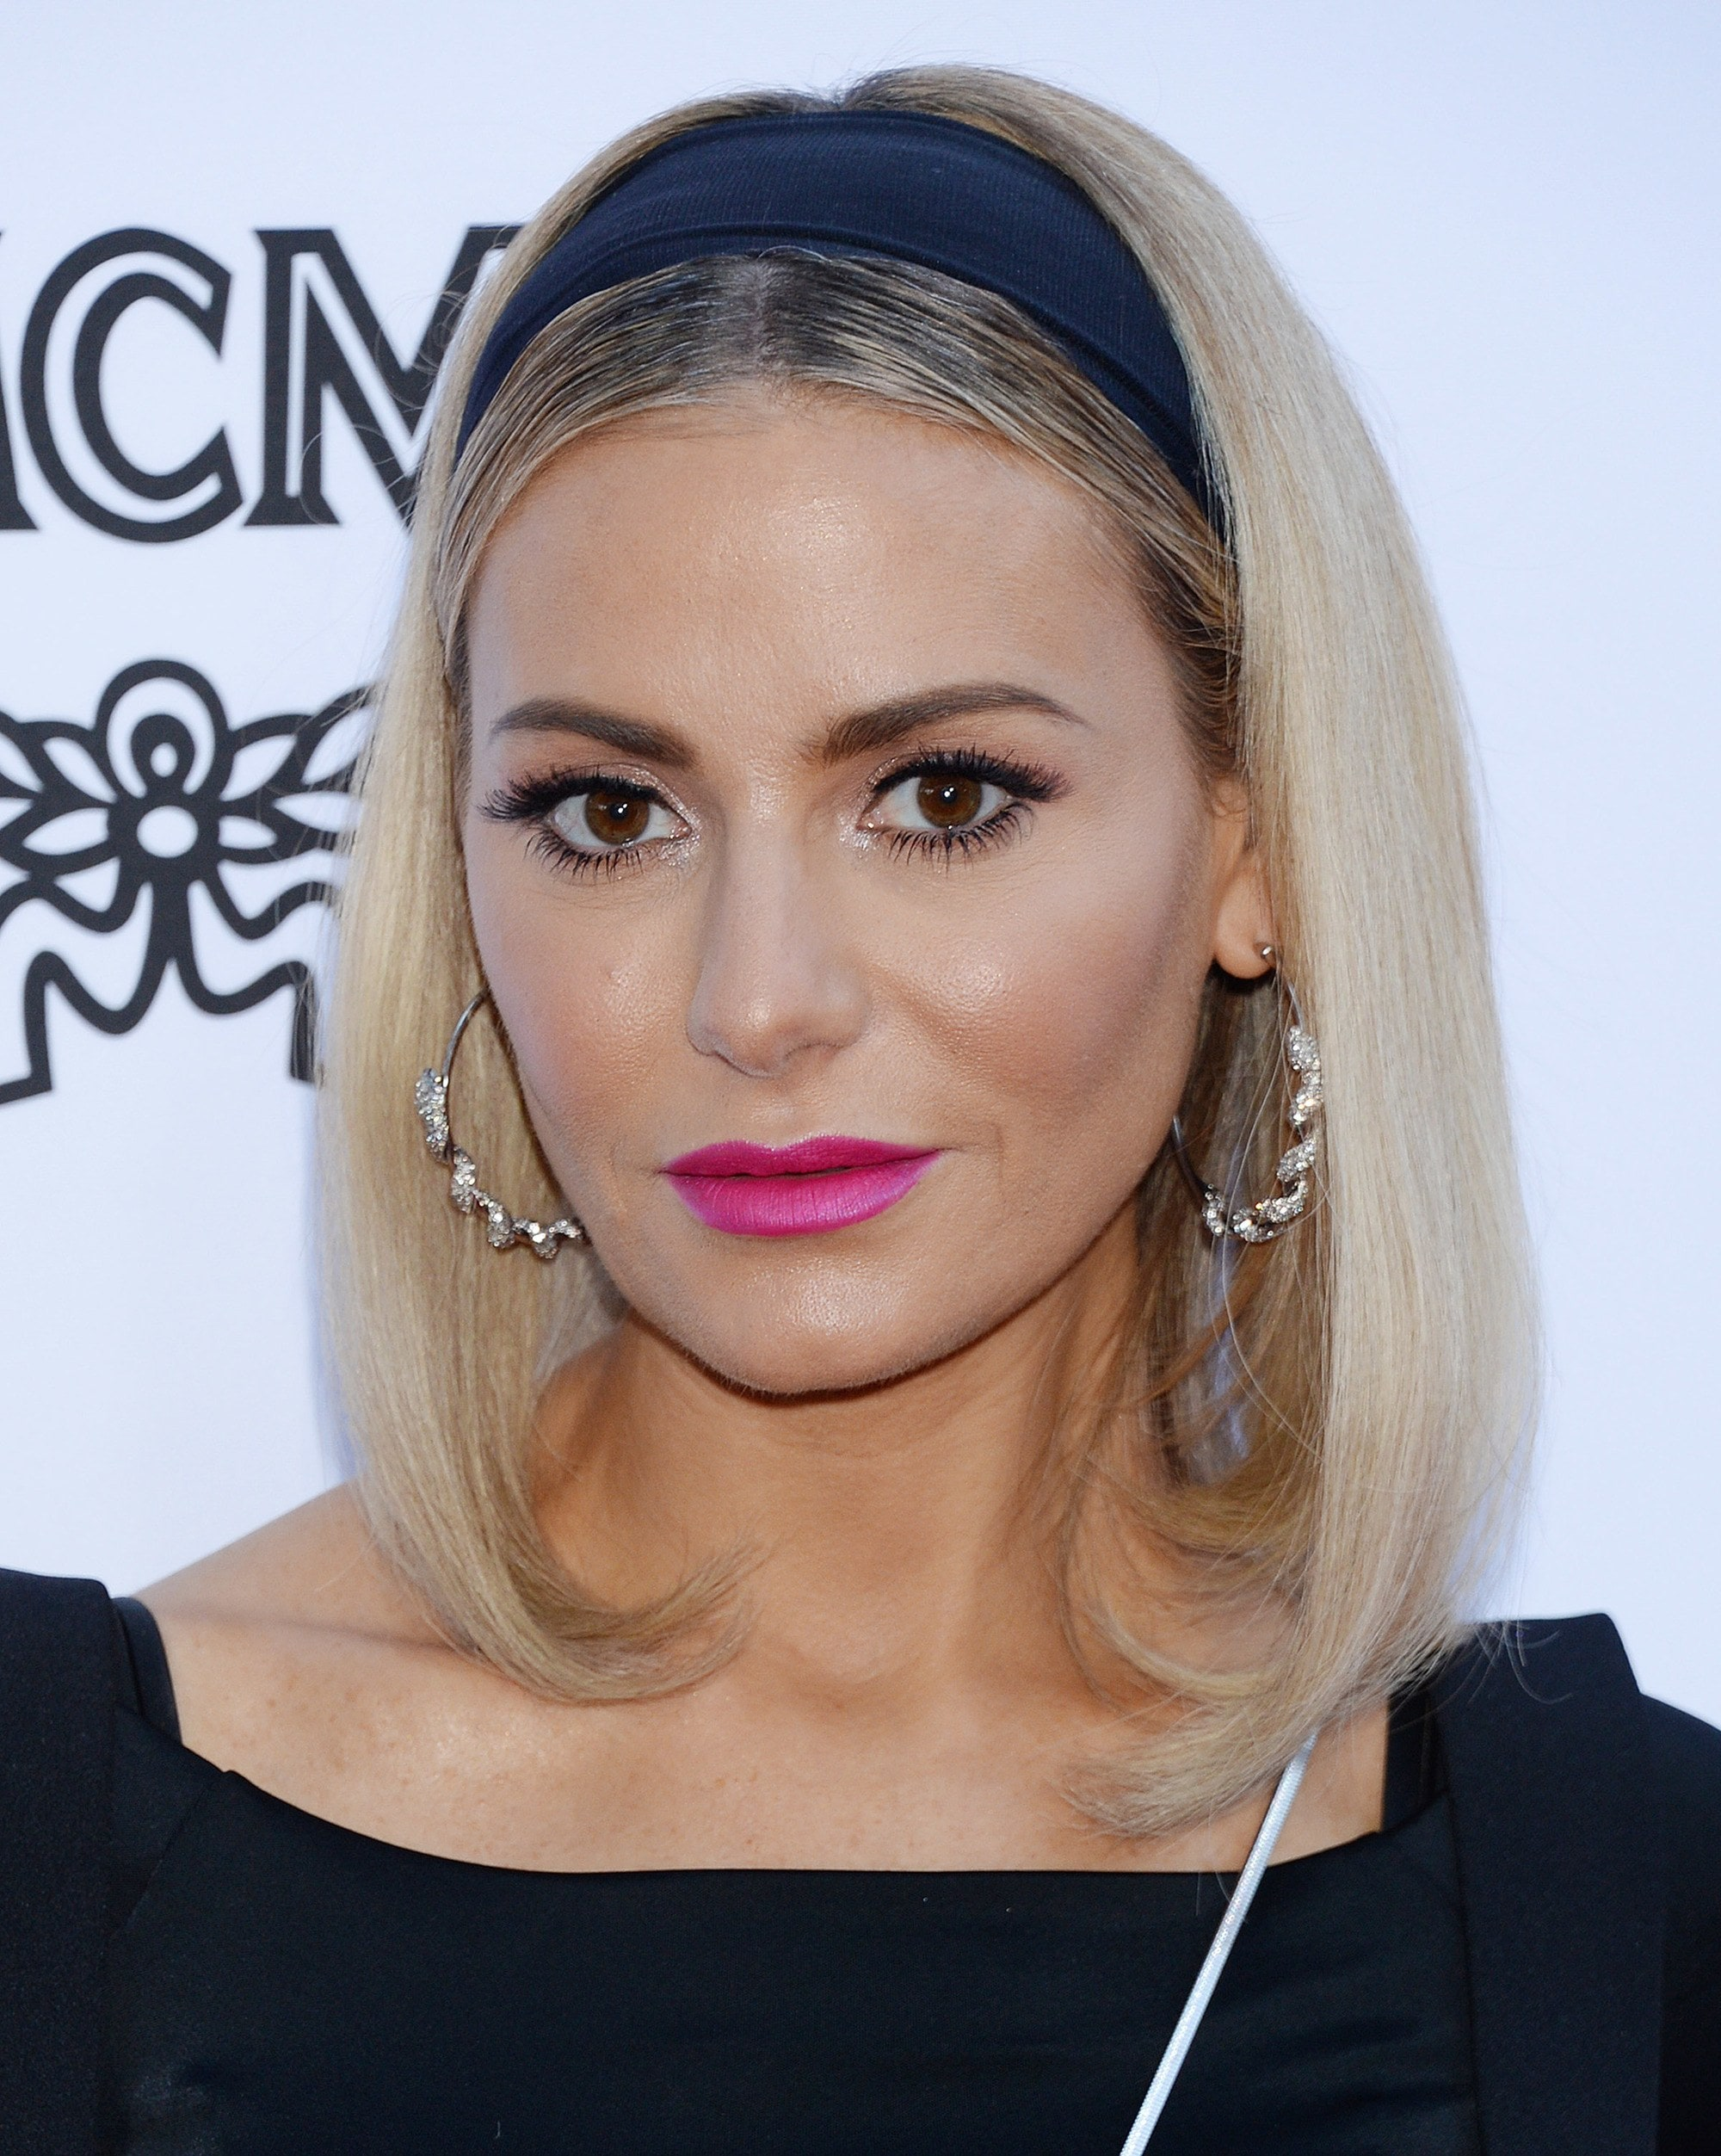 Dorit Kemsley with blonde straight shoulder-length hair, styled with a black headband